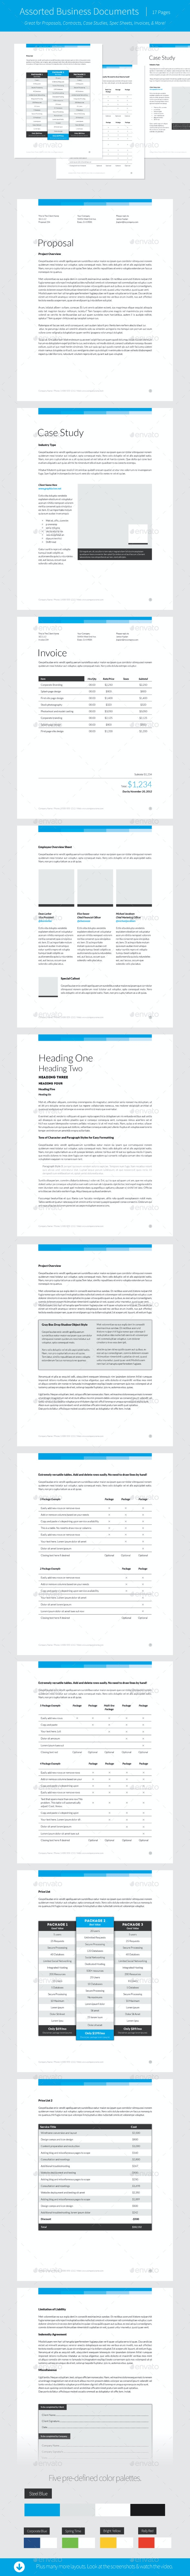 Simply Premium 7 – InDesign Template - Proposals & Invoices Stationery